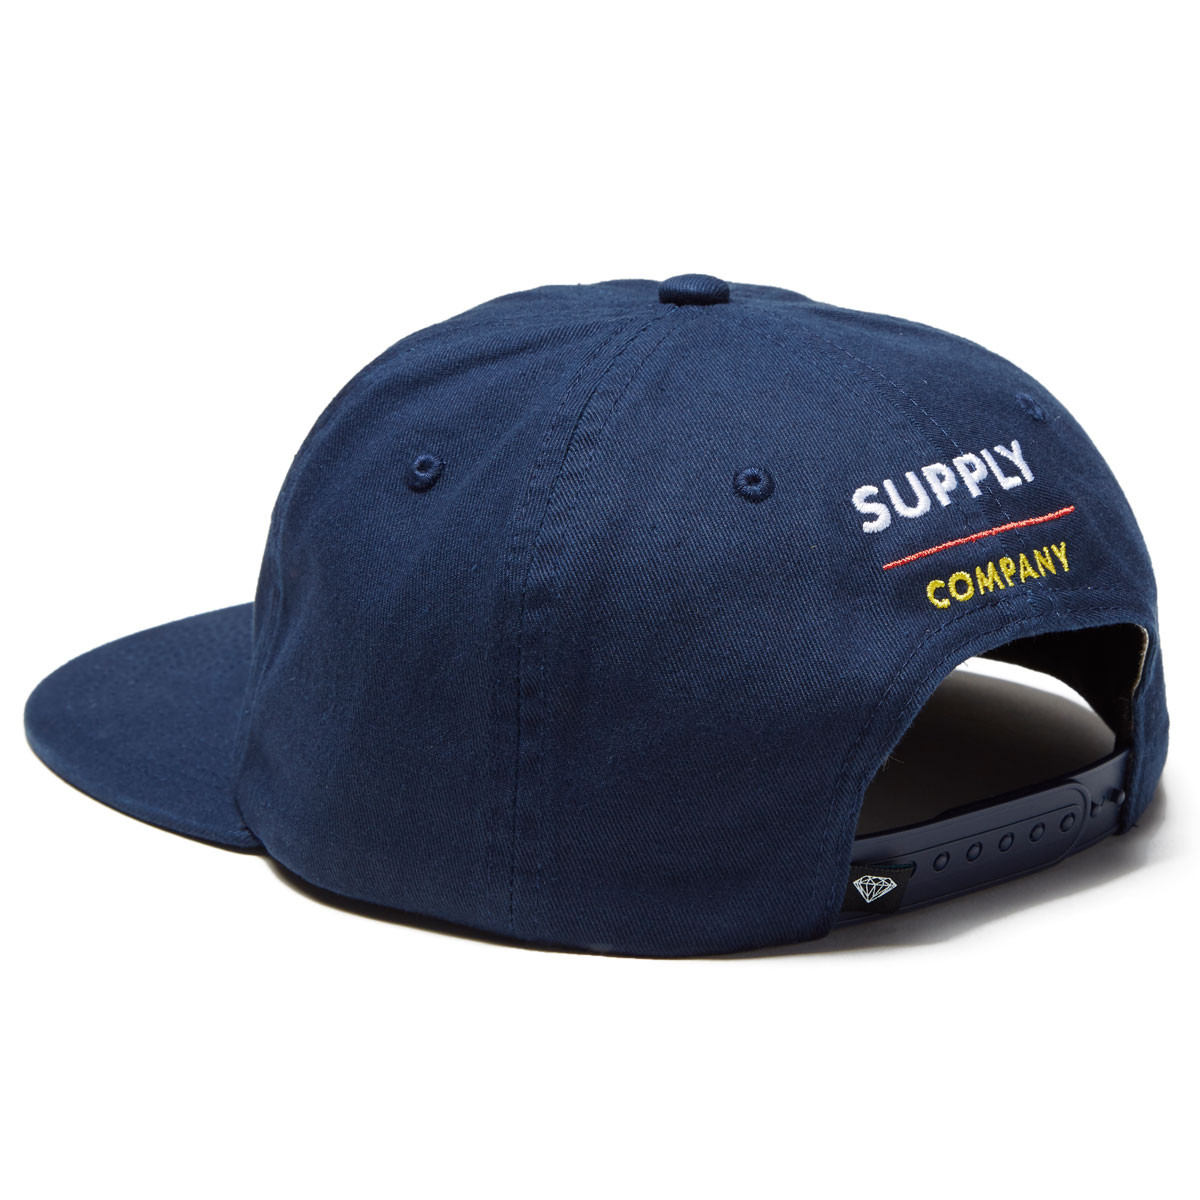 4d0f611f62ded Diamond Supply Co. 6 Panel Unstructured Snapback Hat - Teal